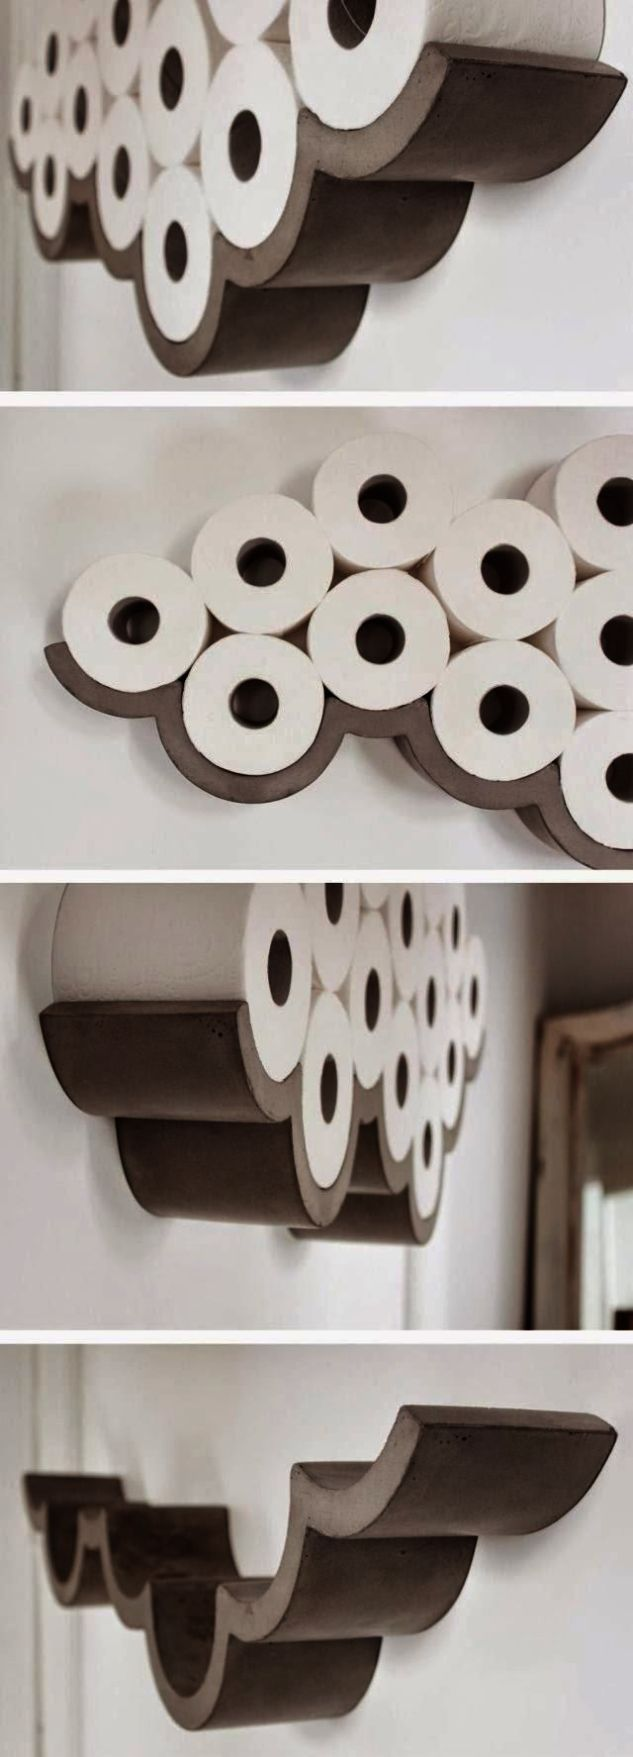 Badezimmer ideen über toilette check it out ue bathroom ideas colors pin  holz  pinterest